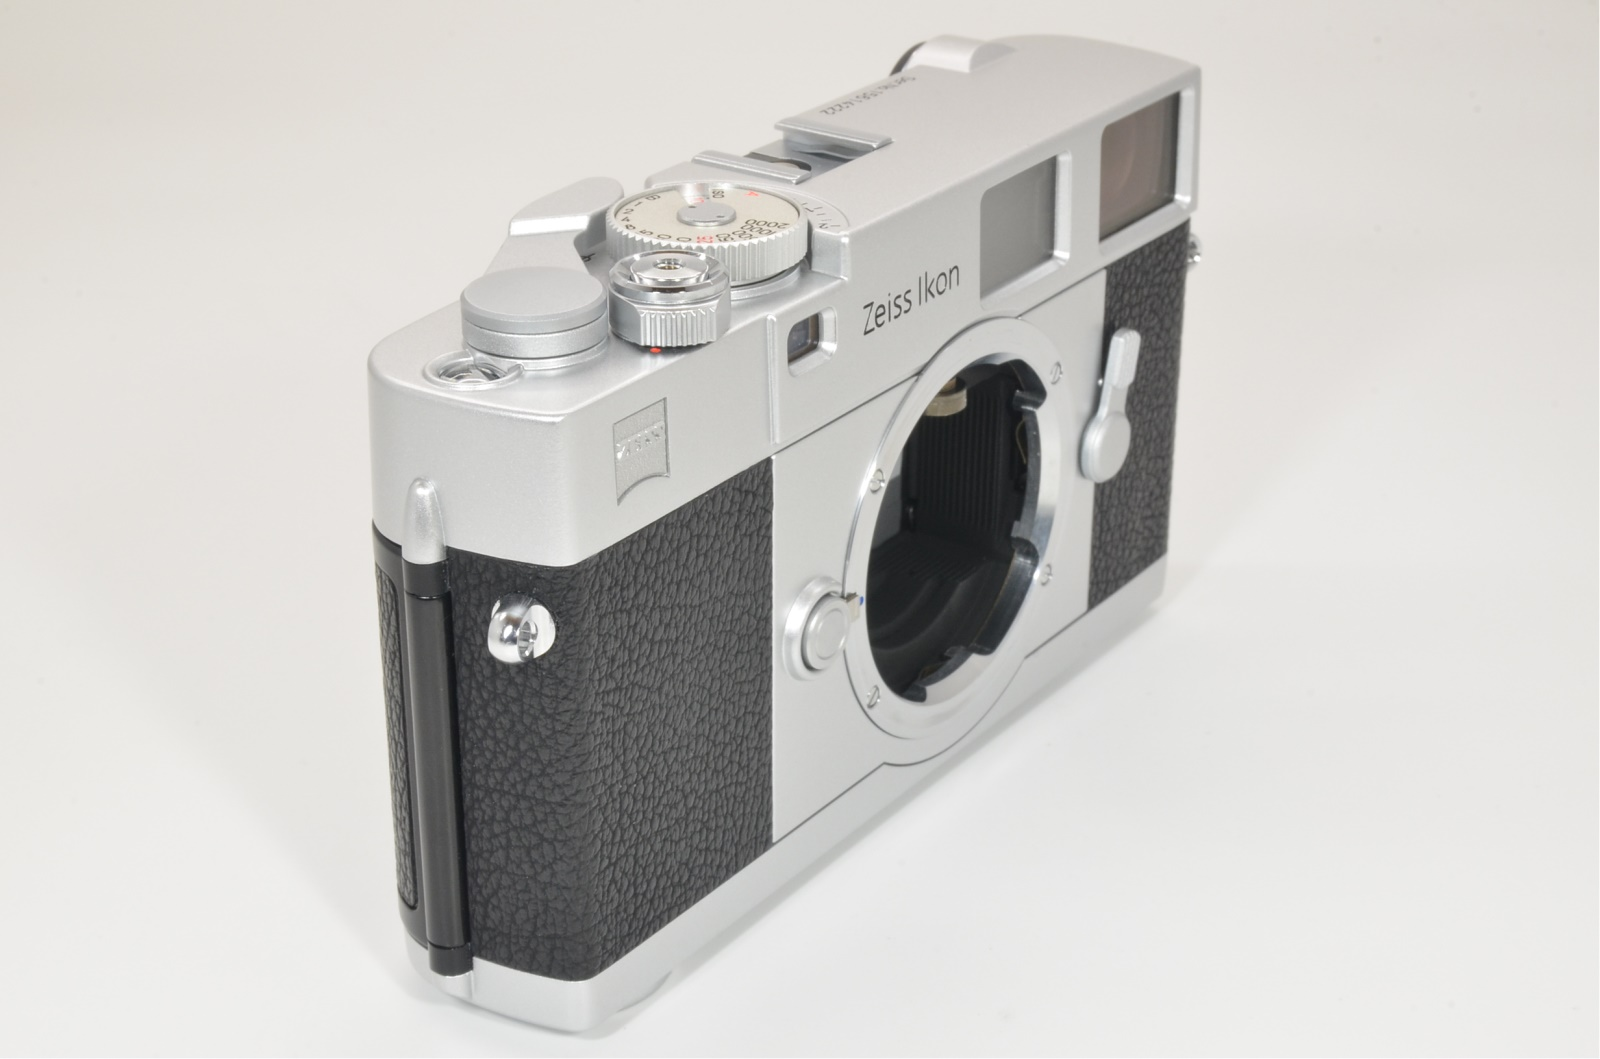 zeiss ikon zm film camera silver recently cla'd by cosina shooting tested